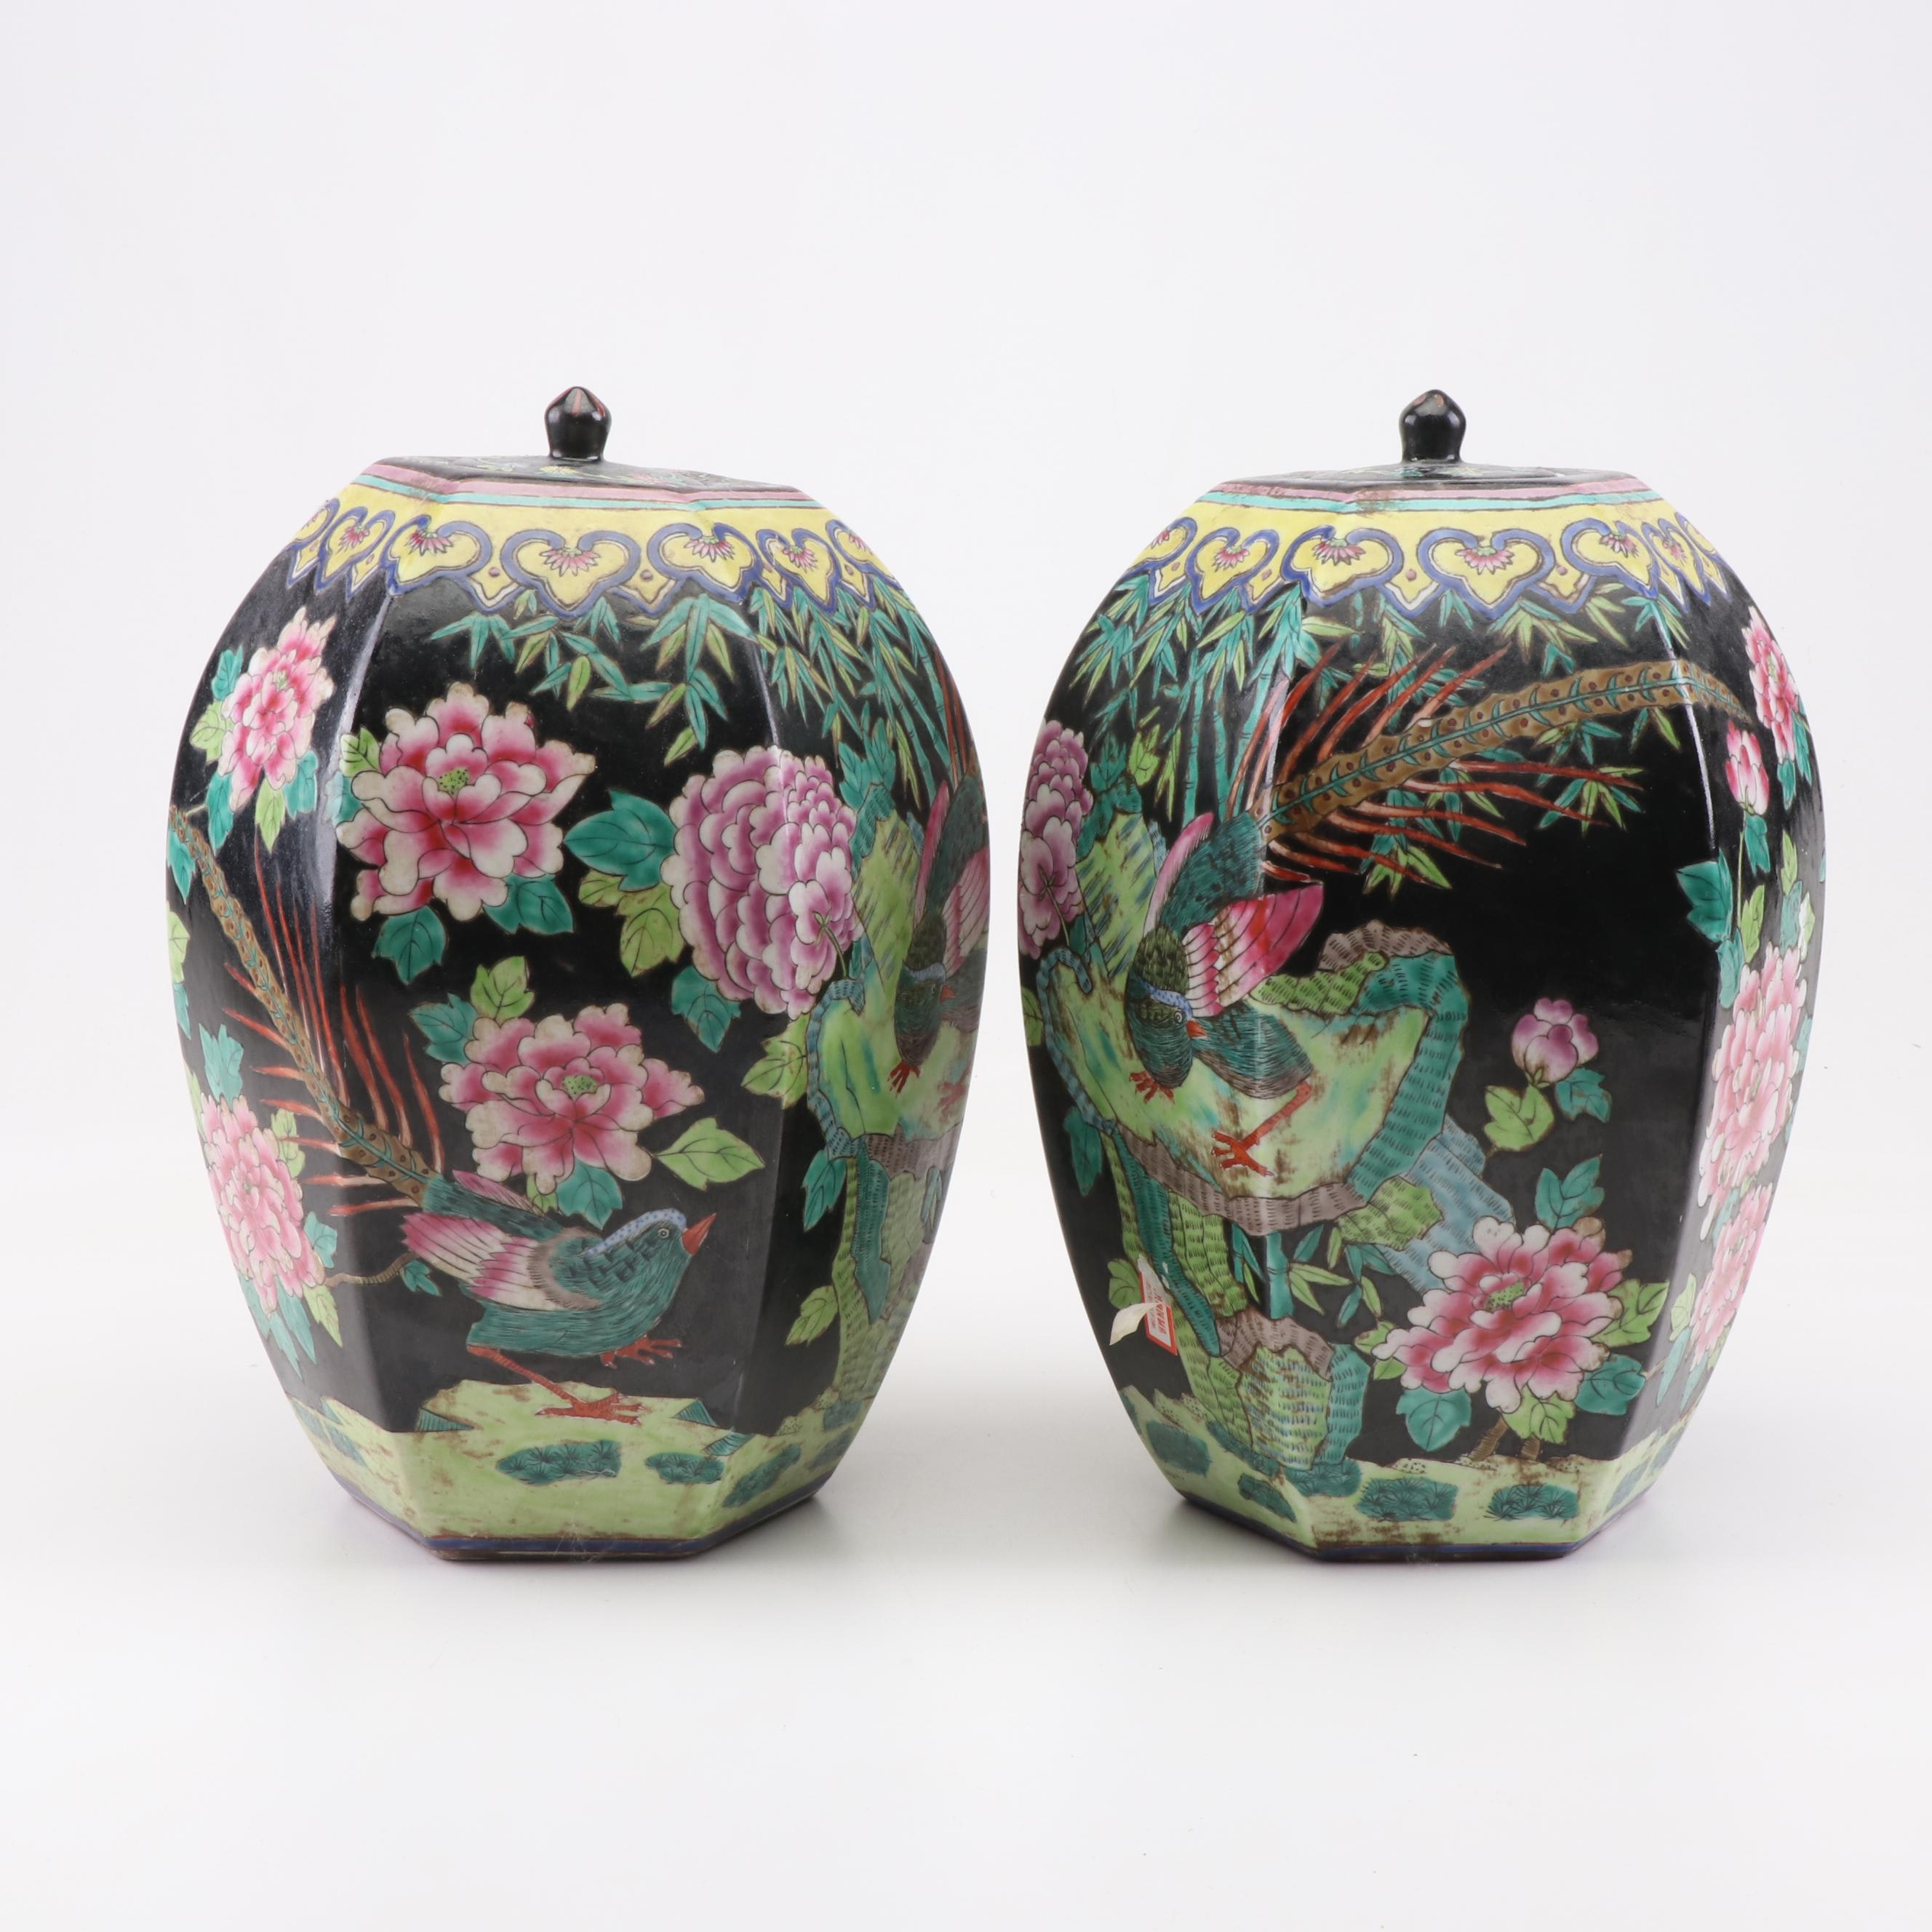 Chinese Famille Noire Ceramic Lidded Jars, circa 1970s